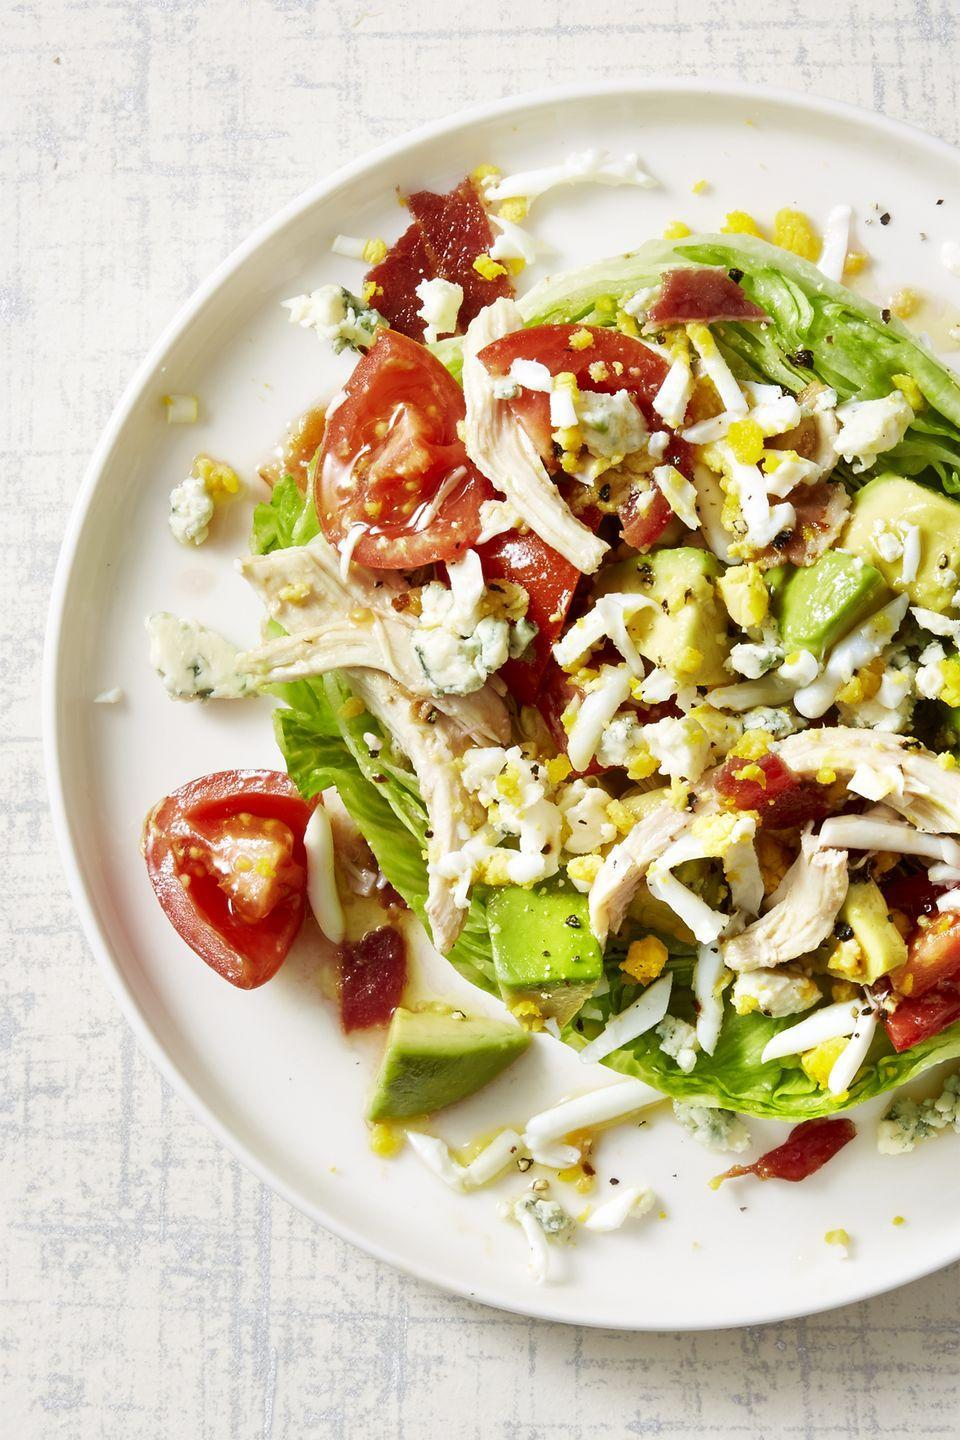 """<p>Top a classic salad with an already-cooked rotisserie chicken for a major time-save (and a big boost of protein!).<br></p><p><span><em><a href=""""https://www.goodhousekeeping.com/food-recipes/easy/a45224/caribbean-chicken-rice-recipe/"""" rel=""""nofollow noopener"""" target=""""_blank"""" data-ylk=""""slk:Get the recipe for Rotisserie Chicken Cobb Salad »"""" class=""""link rapid-noclick-resp"""">Get the recipe for Rotisserie Chicken Cobb Salad »</a></em></span><span><br></span></p>"""